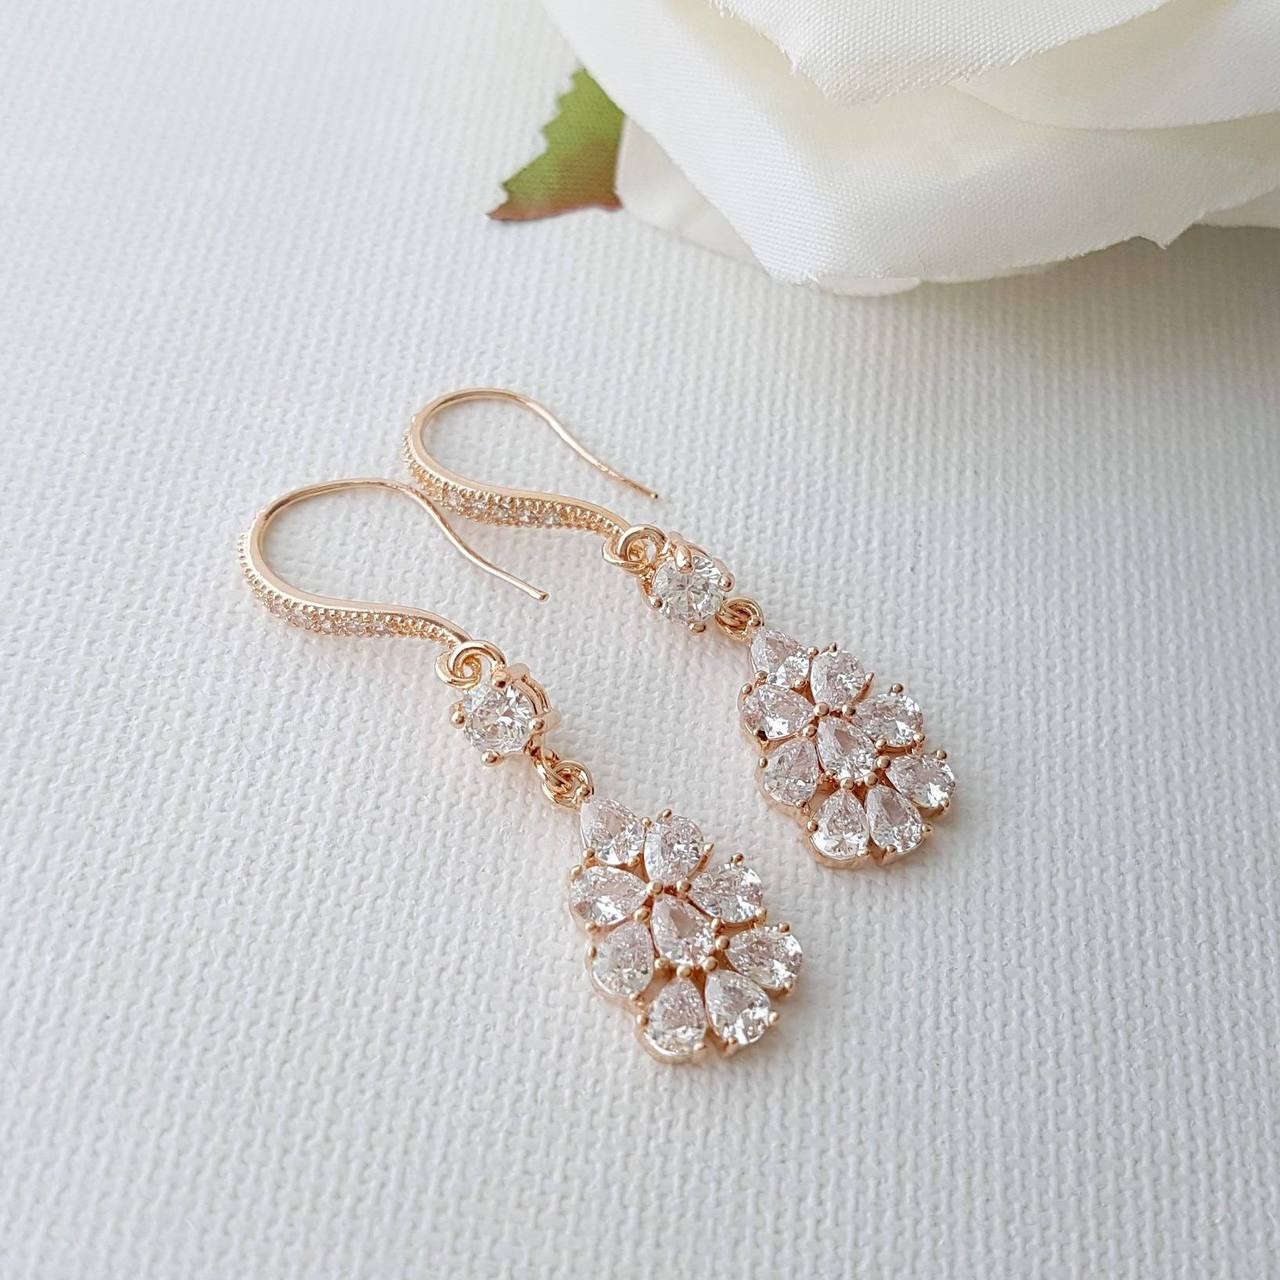 Rose Gold Bridal Earrings Crystal Dangle Earrings Wedding